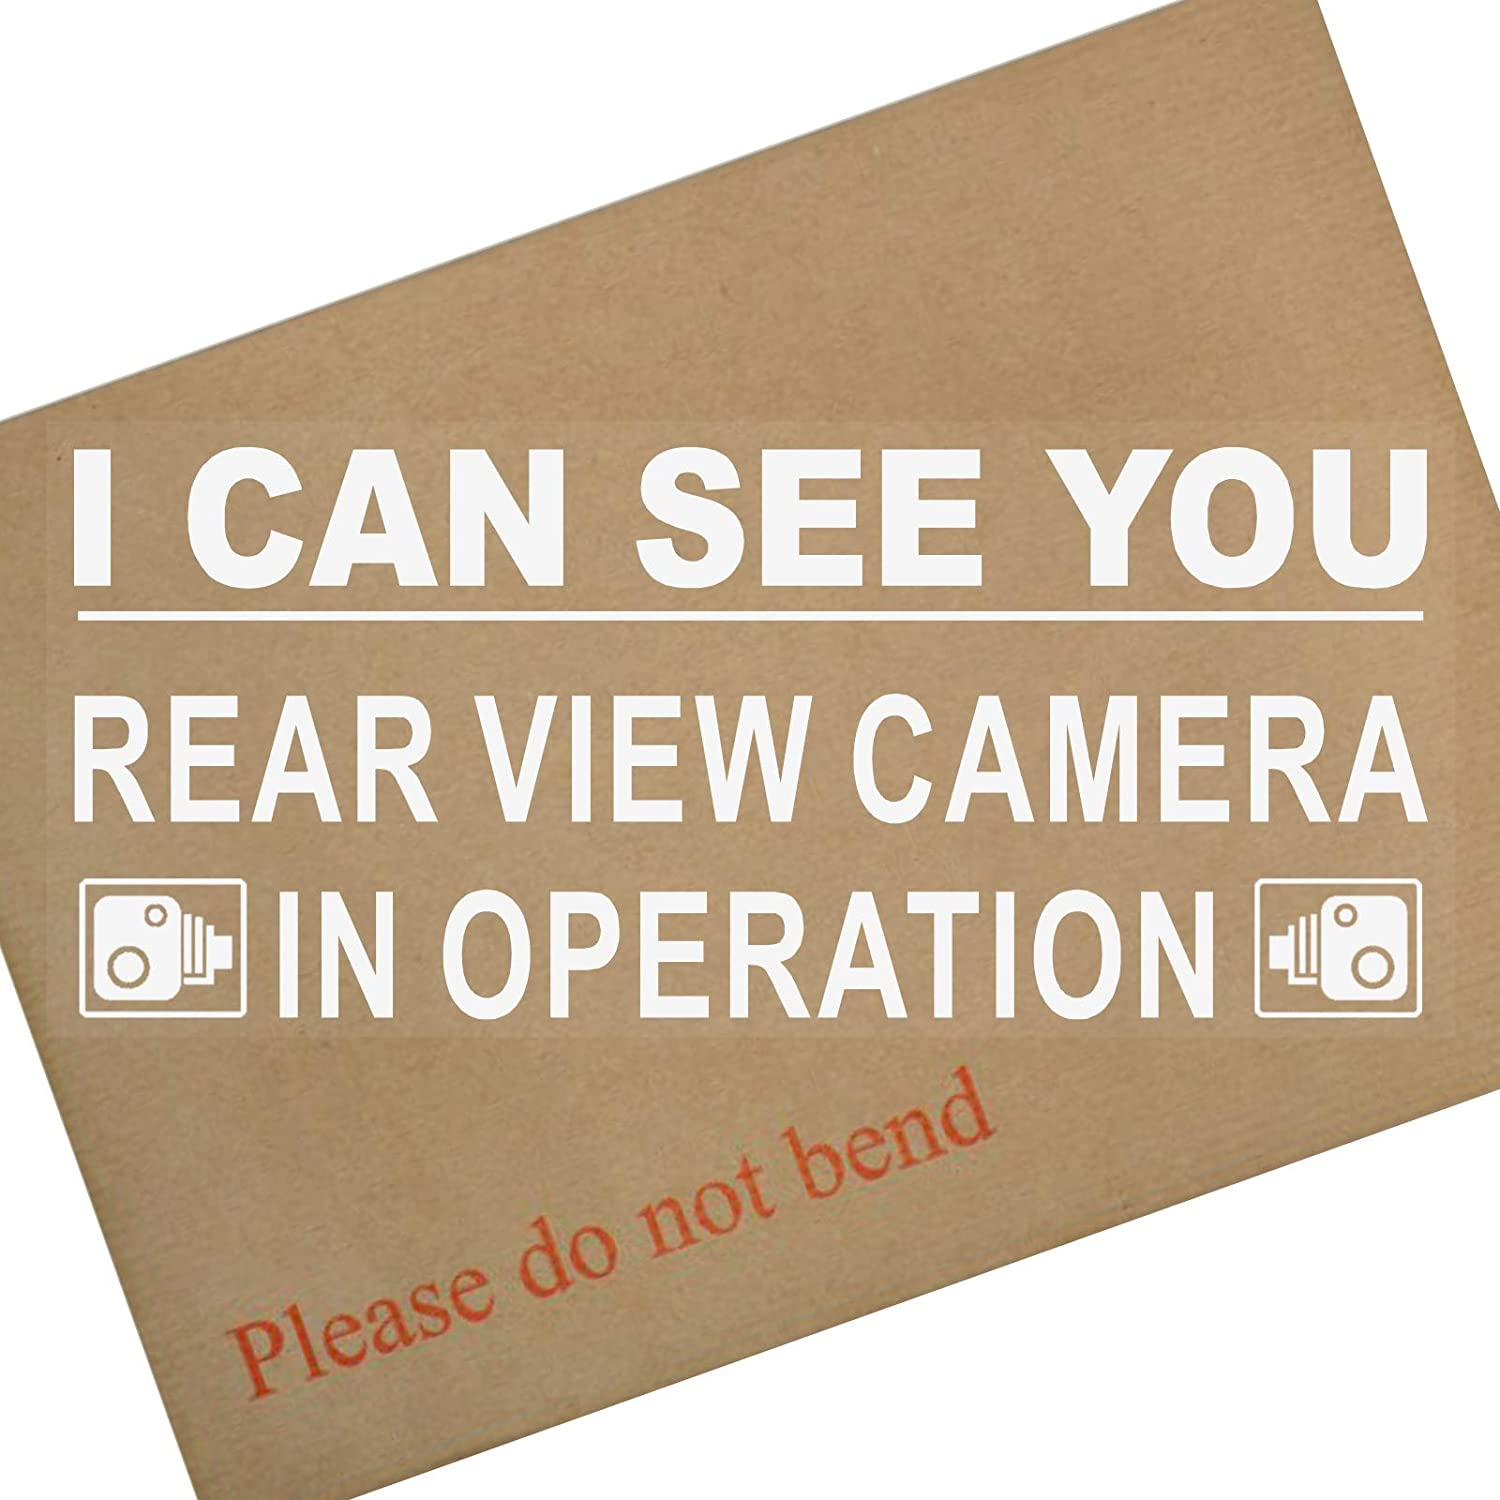 Platinum Place 1 x Window Sticker-I Can See You-Rear View Camera In Operation Security Warning-200mm x 87mm-CCTV Sign-Van, Lorry, Truck, Taxi, Bus, Mini Cab, Minicab